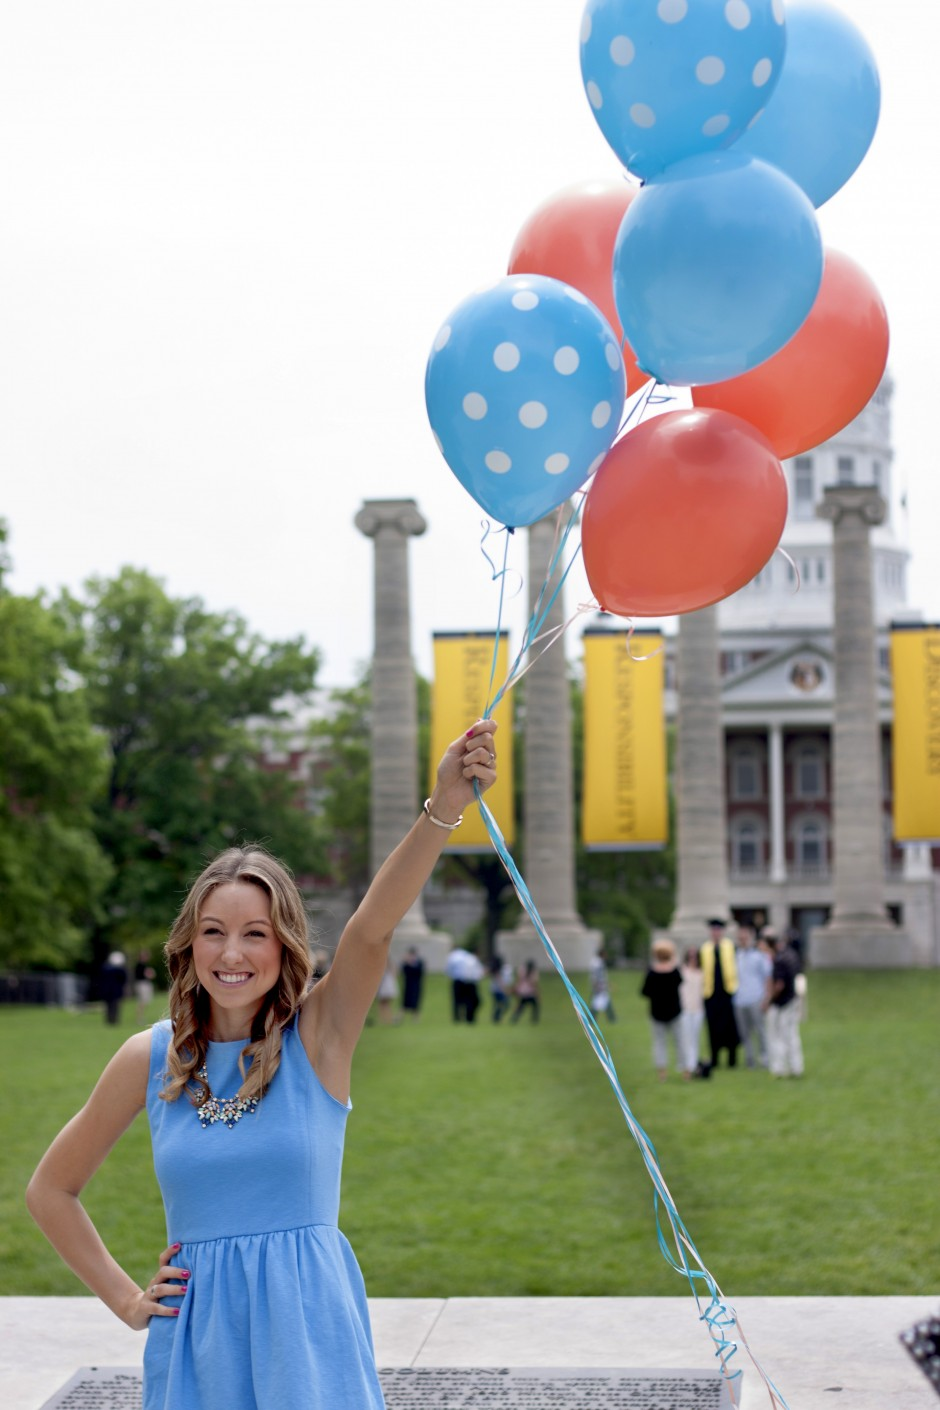 Dana Kaempfe, a newgraduate of the Missouri School of Health Professions, celebrates the occasion with a bundle of balloons and her parents.